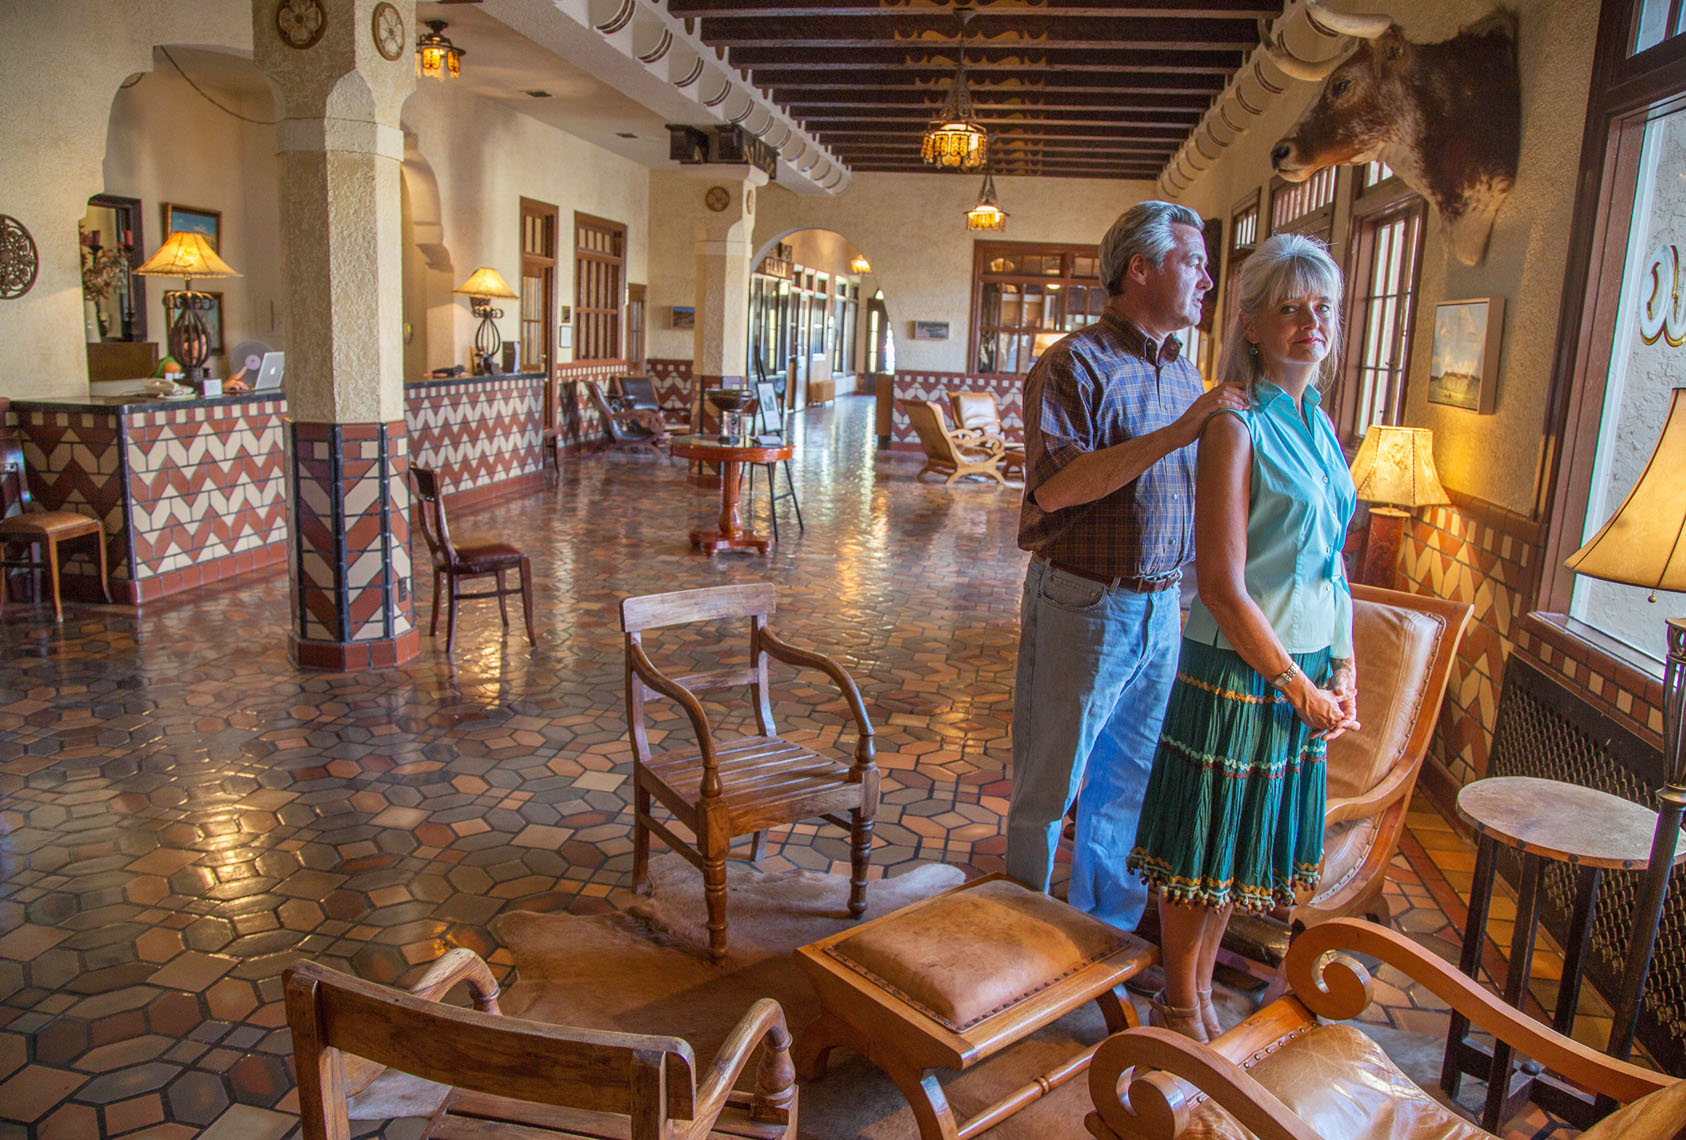 Joe and Lanna Duncan, El Paisano Hotel, Marfa, Texas Spanish baroque hotel